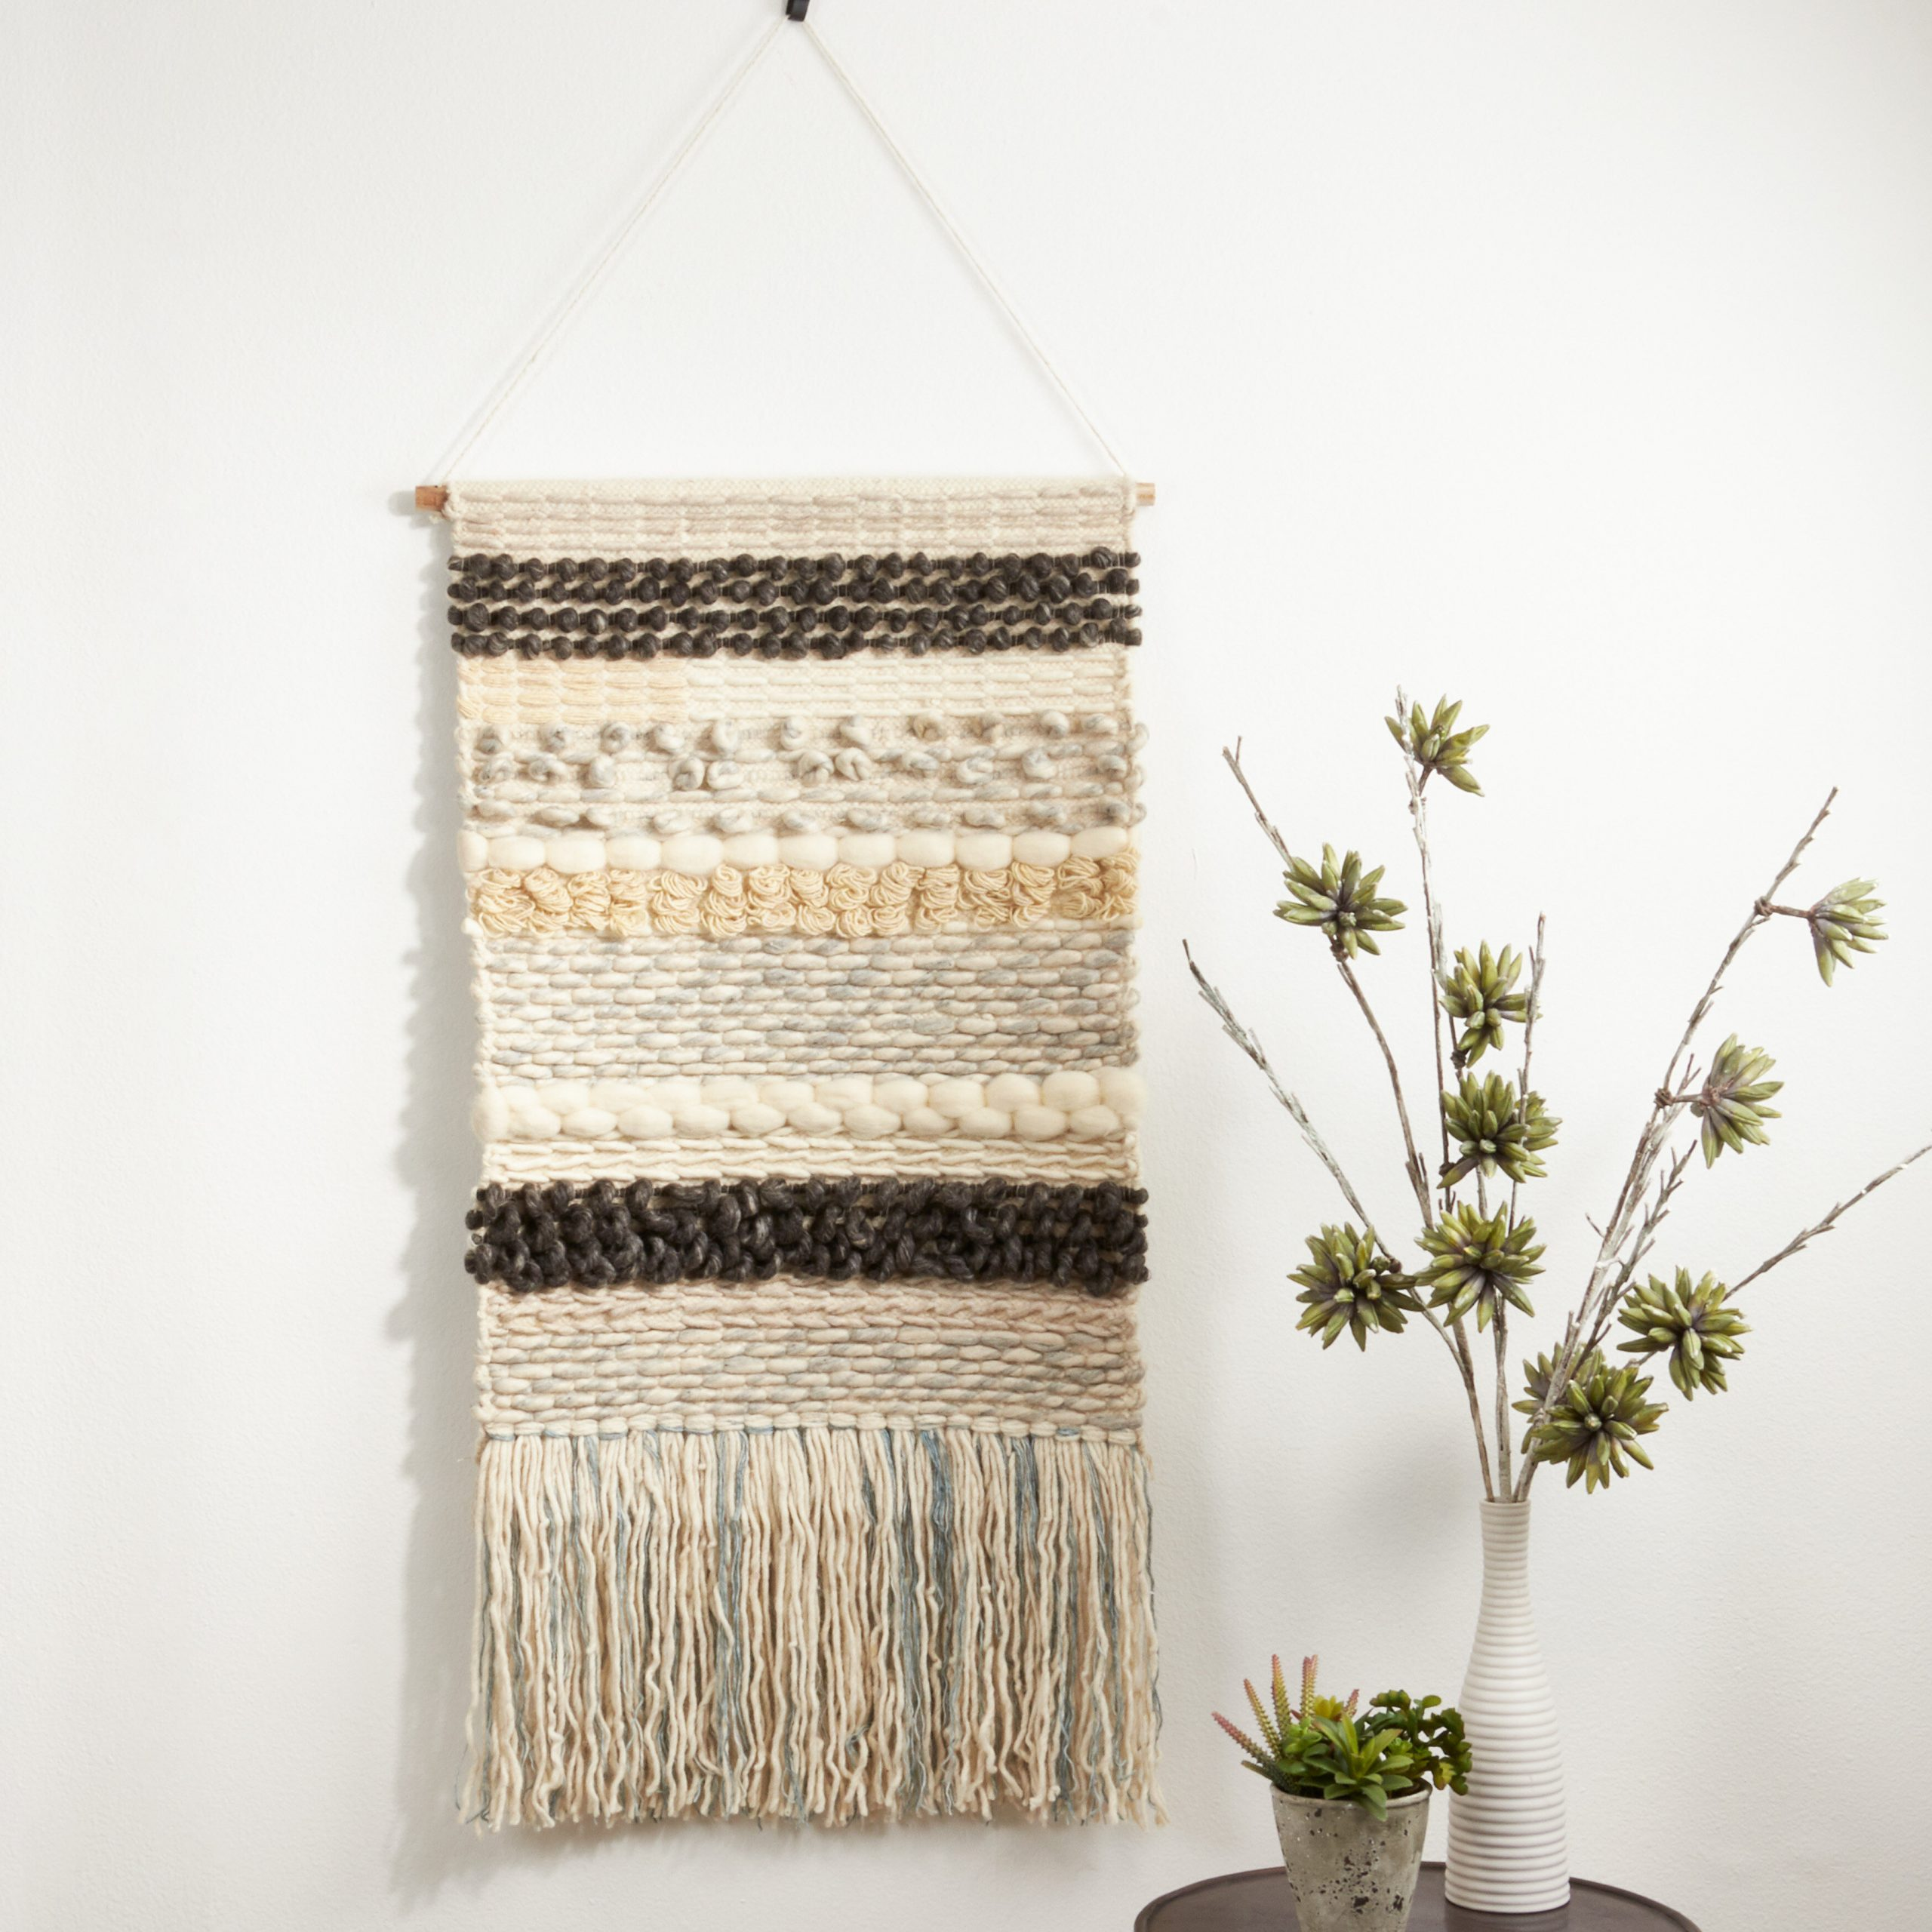 Blended Fabric Ranier Wall Hangings With Hanging Accessories Included For Most Popular Blended Fabric Woven With Rod Included (View 10 of 20)